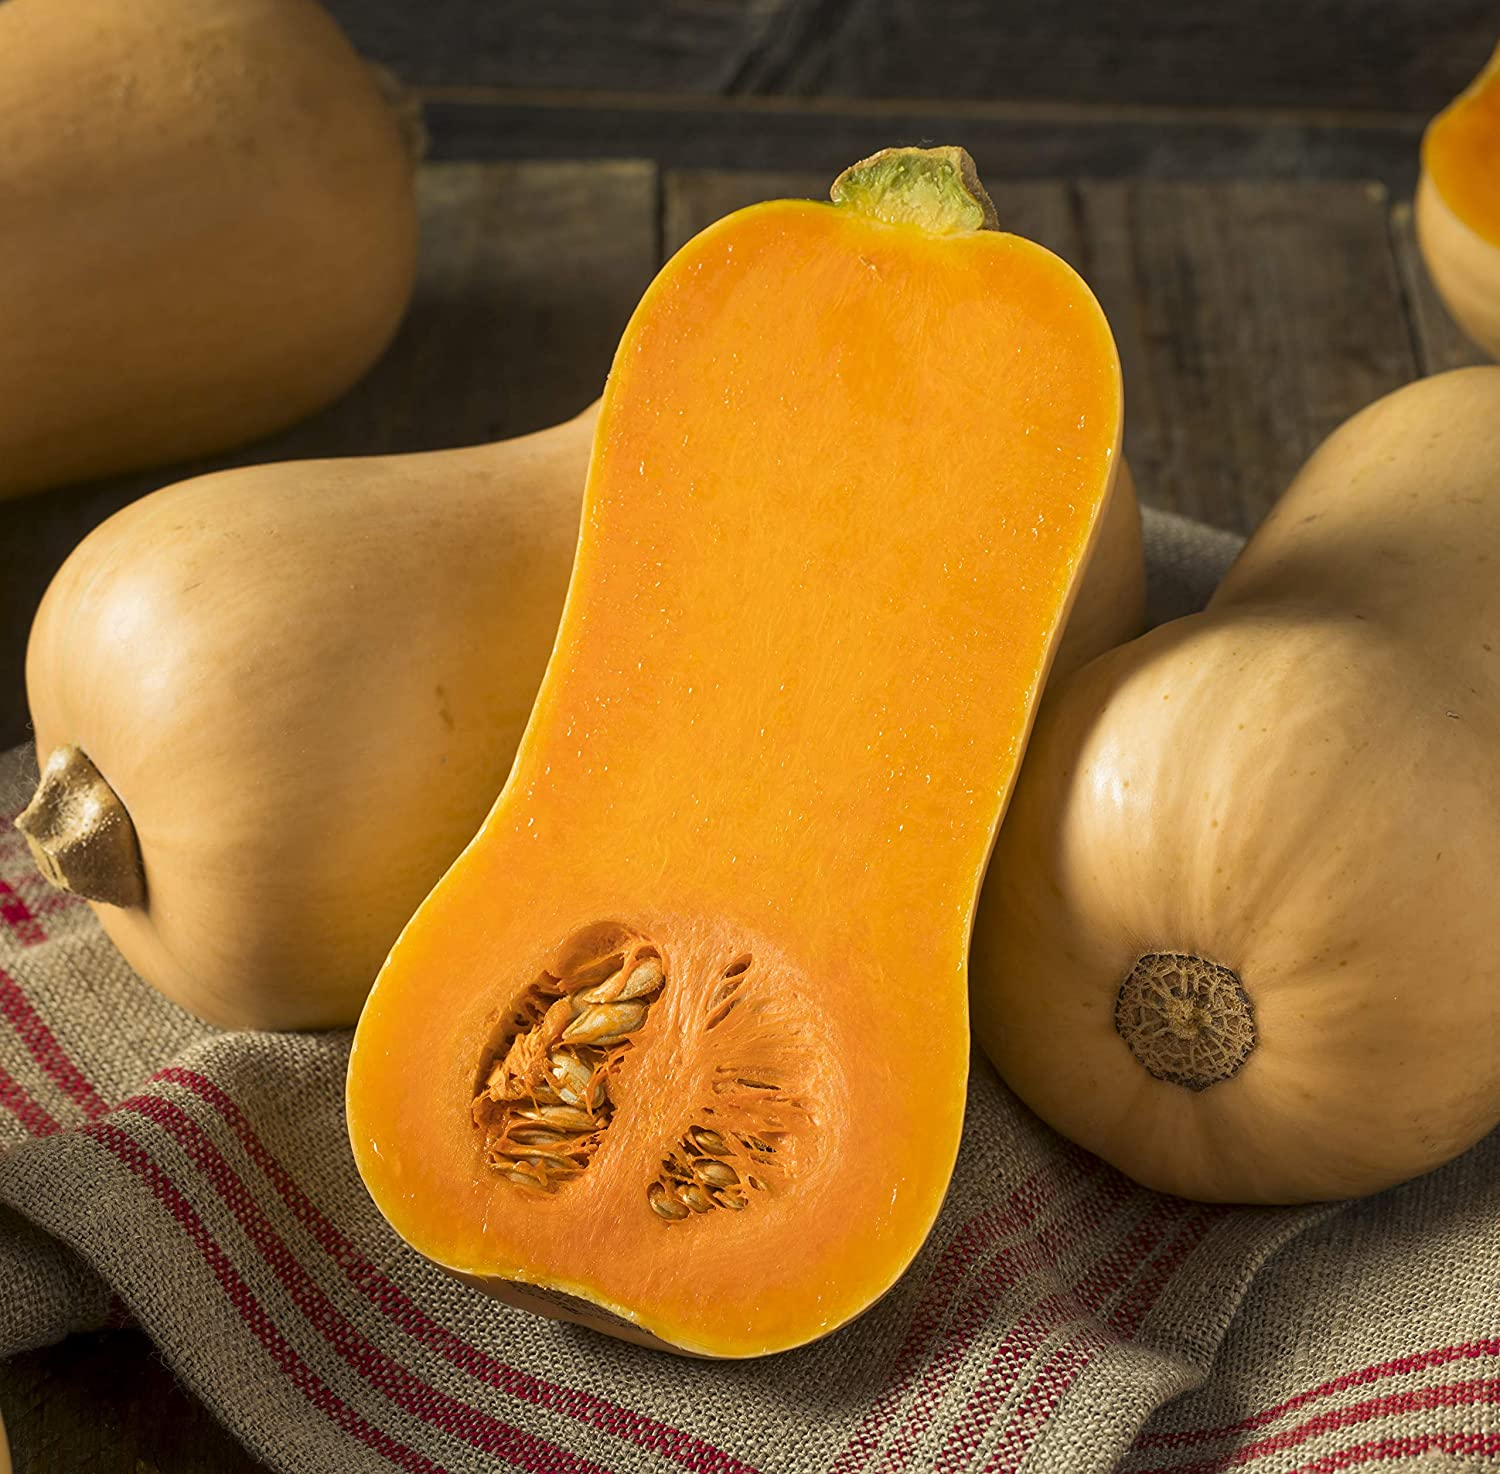 Max 68% OFF Sweet Yards Seed Co. 70% OFF Outlet Organic Squash Seeds 'Waltha Butternut